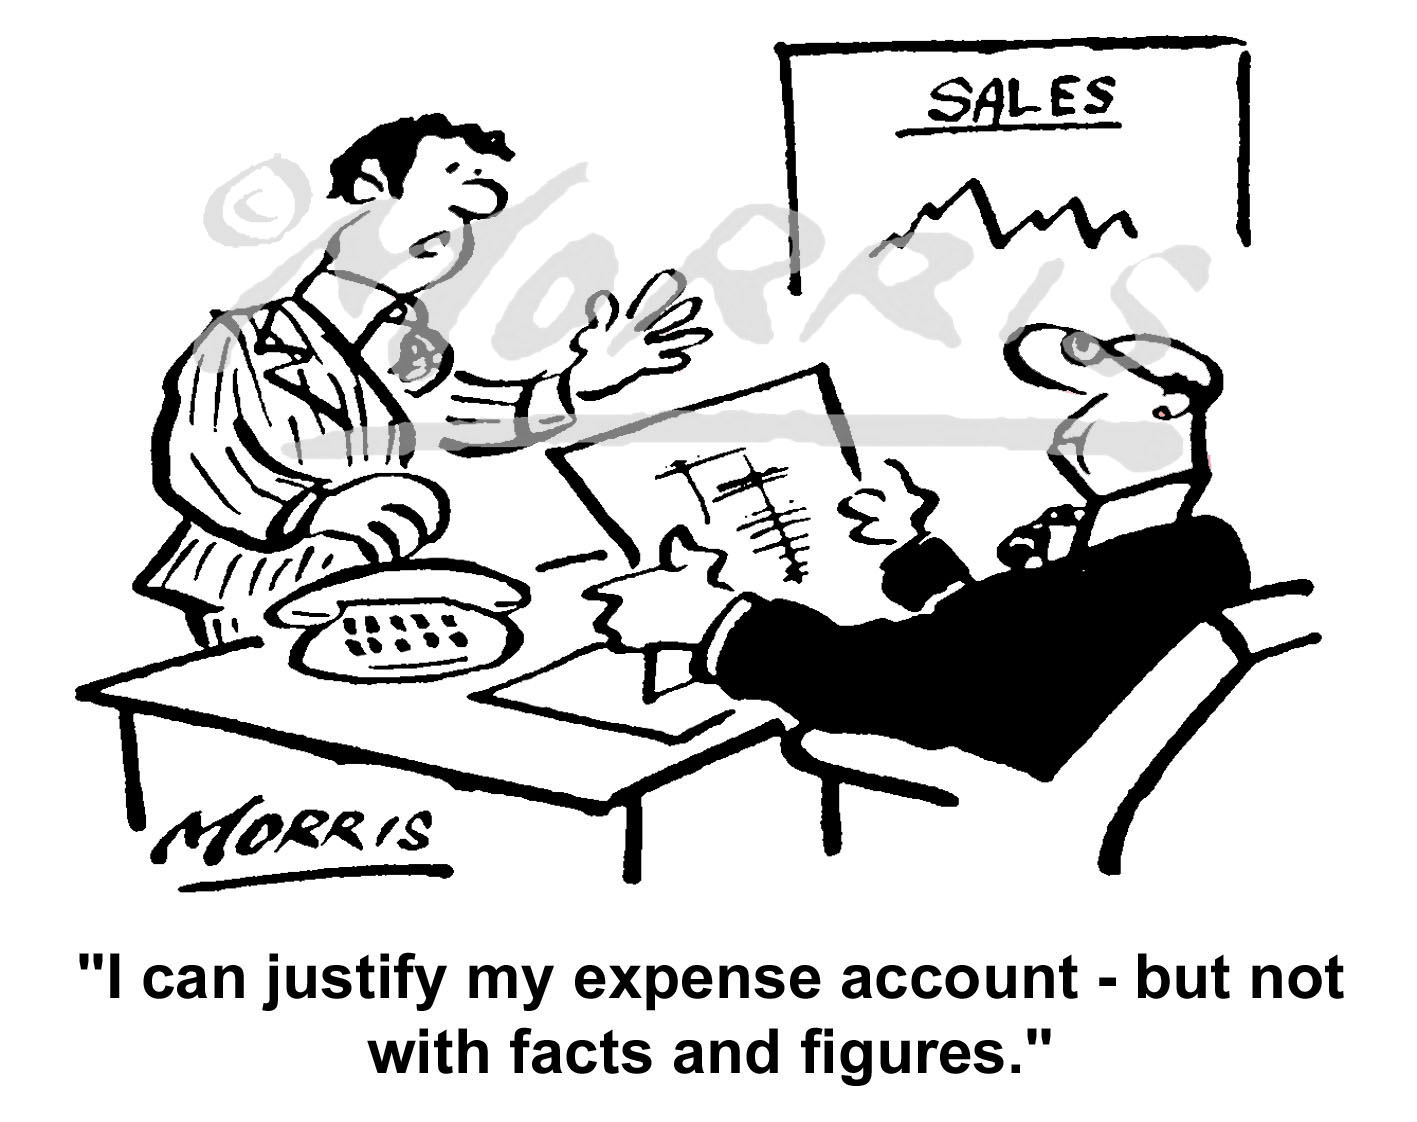 Business expense account cartoon Ref: 4311bw